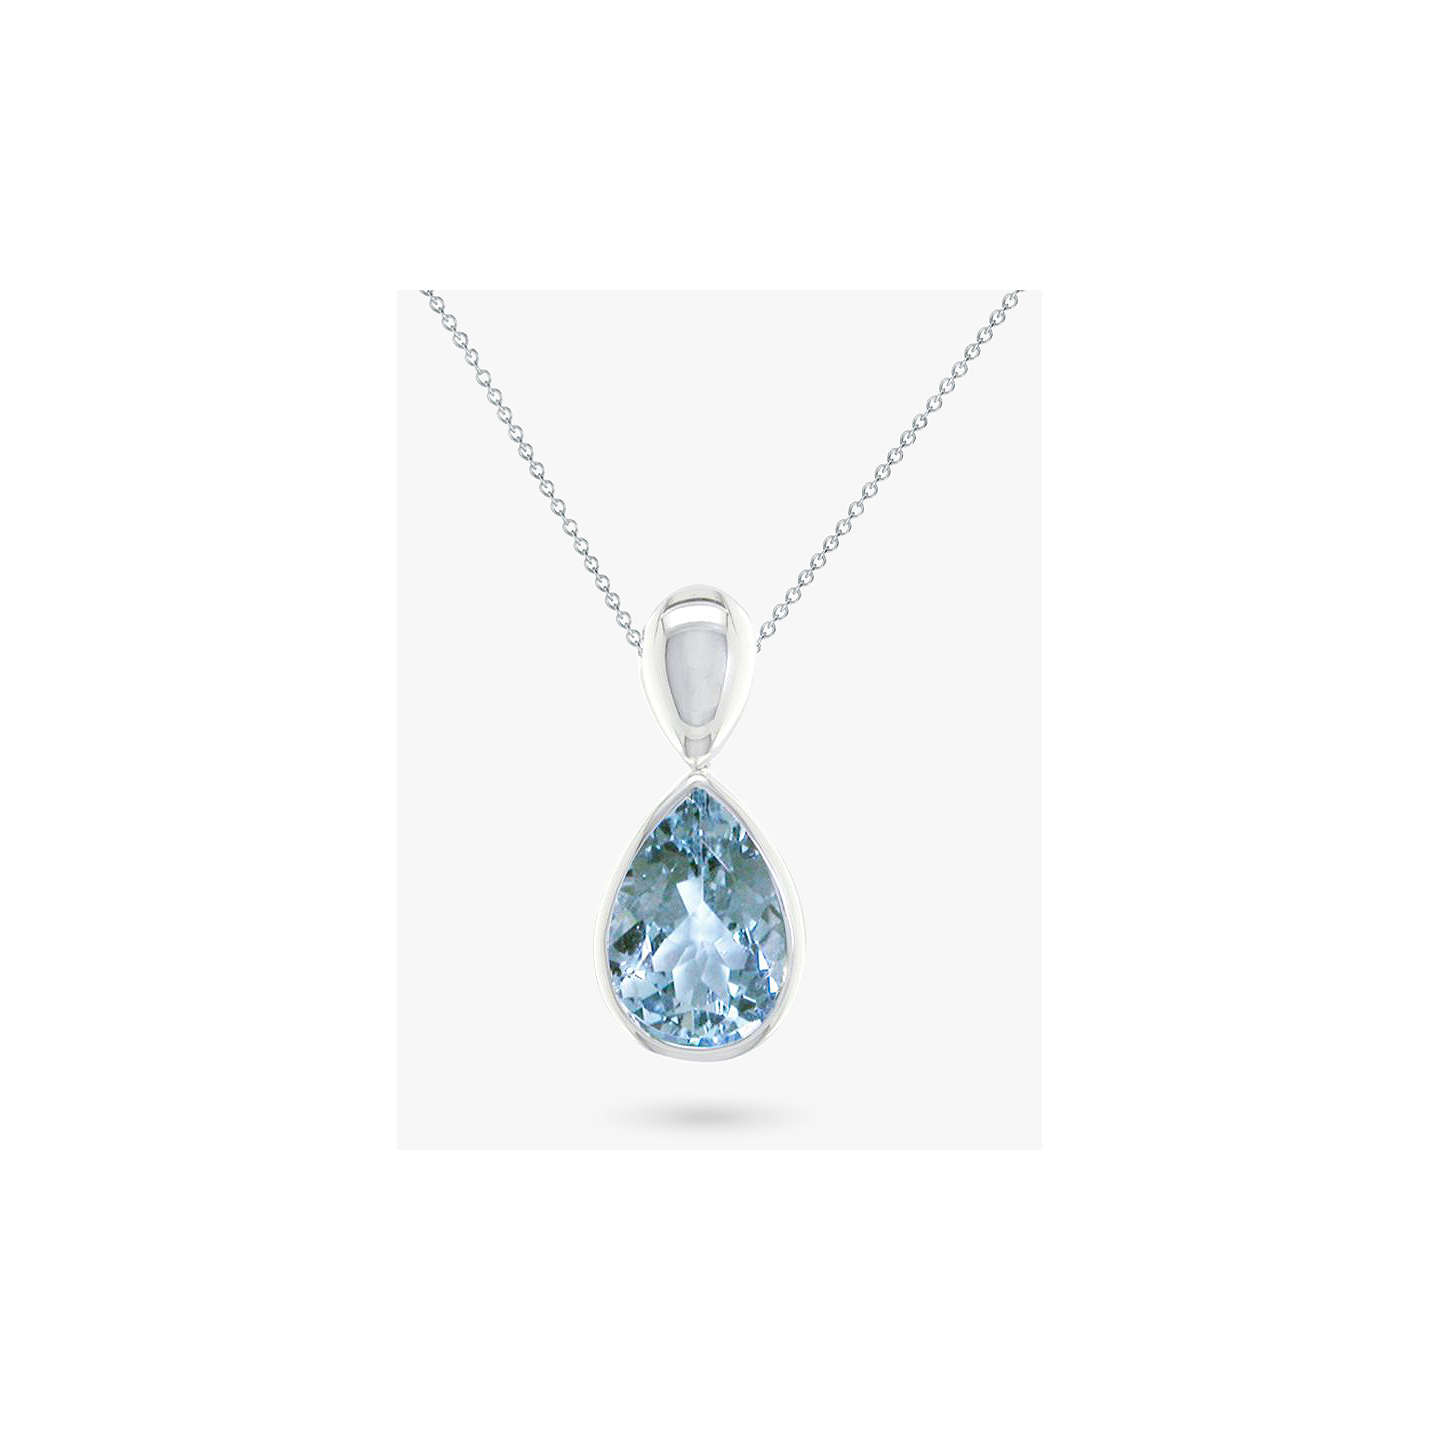 jason jewelry wayne aquamarine products large pendant